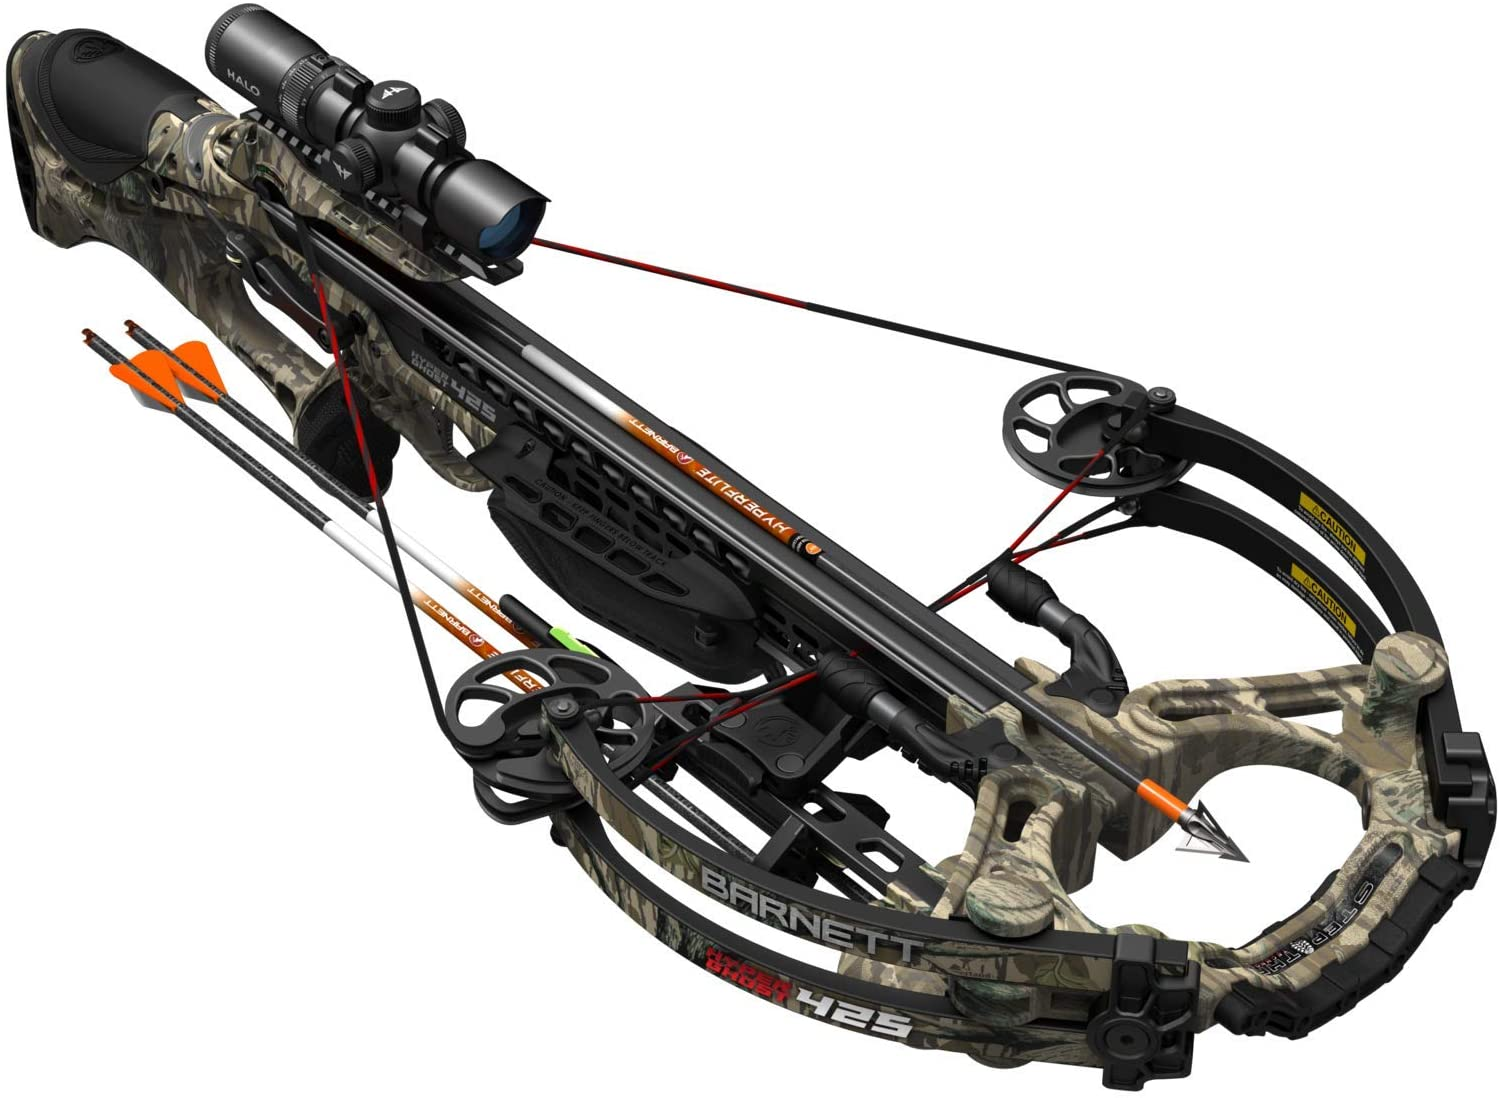 HyperGhost 425 Crossbow Review